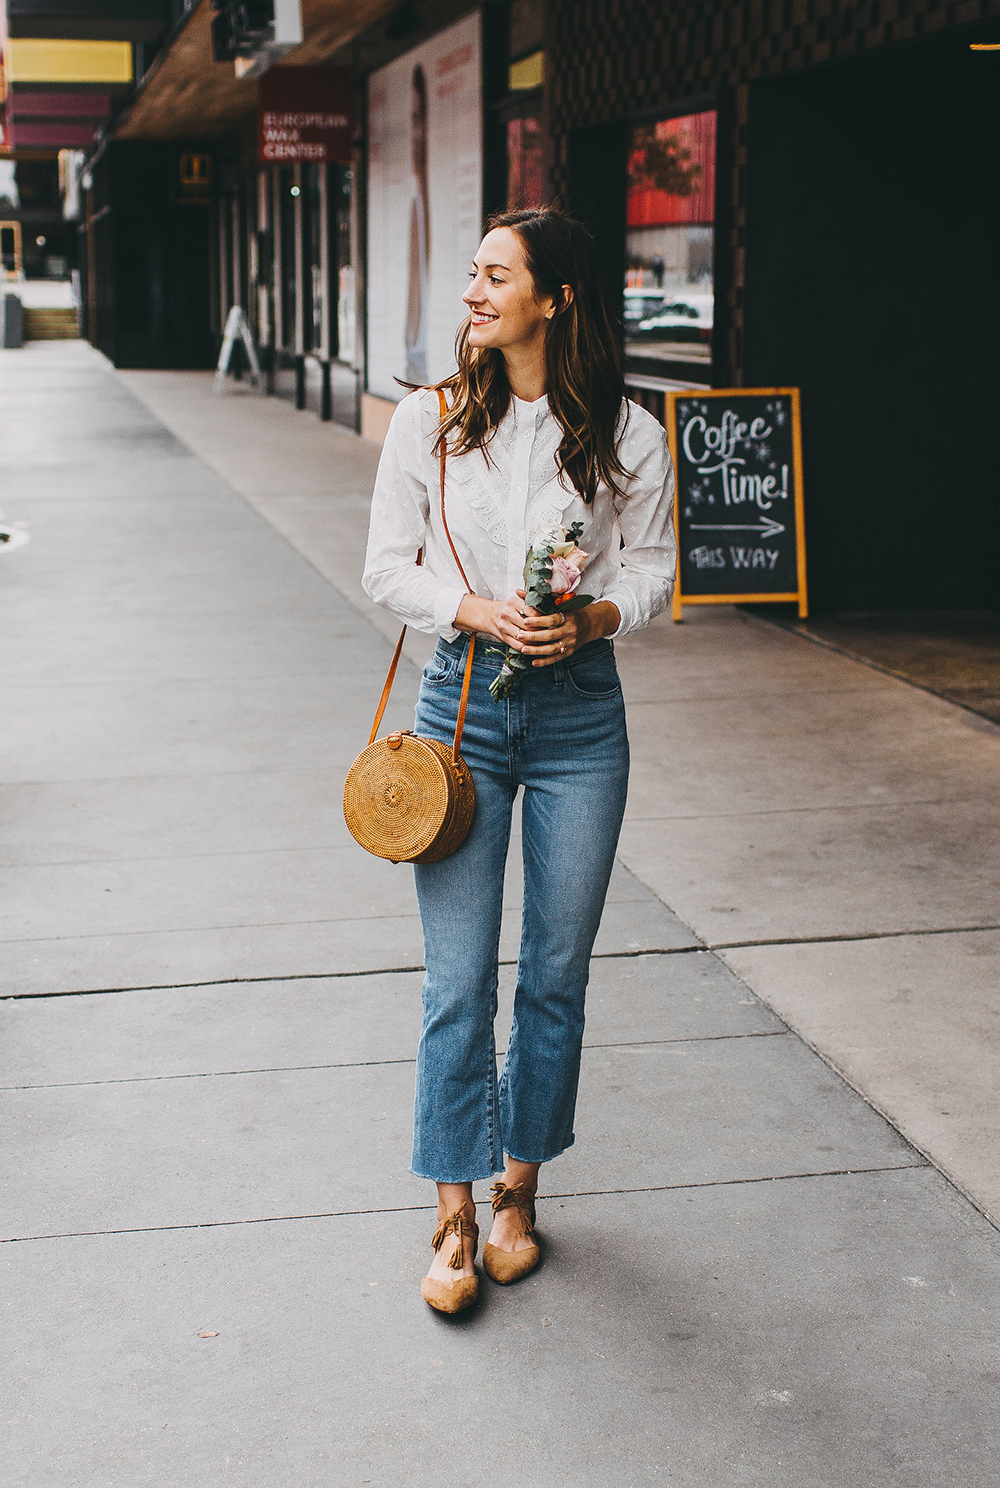 livvyland-blog-olivia-watson-austin-texas-fashion-style-blogger-sezane-white-eyelet-blouse-kick-flare-jeans-simple-spring-outfit-14